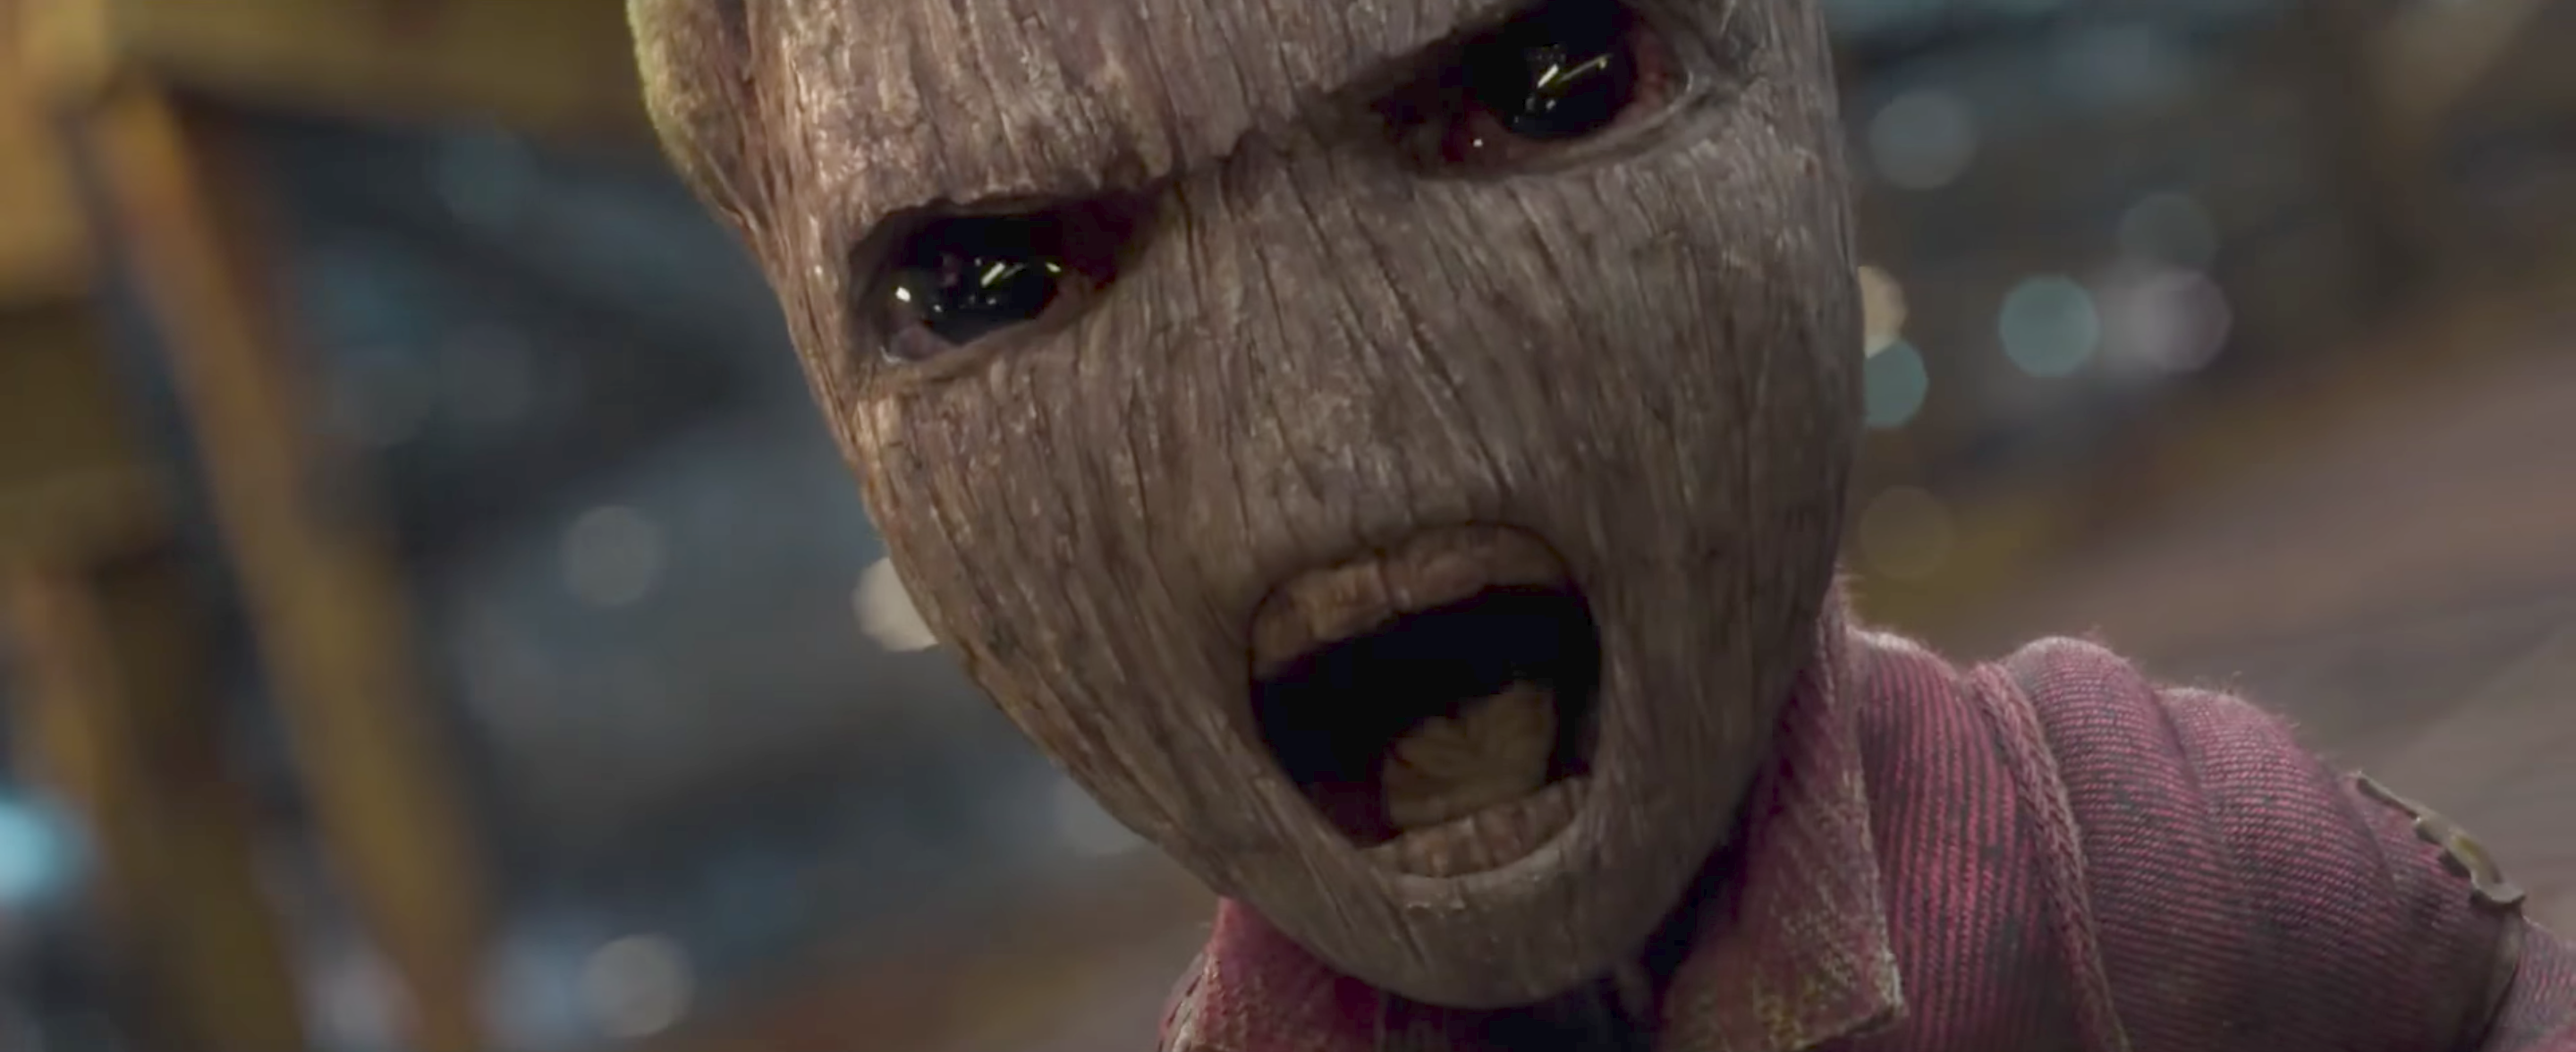 Sorry Hulk, Baby Groot smashes everything in Guardians of the Galaxy Vol 2's new trailer